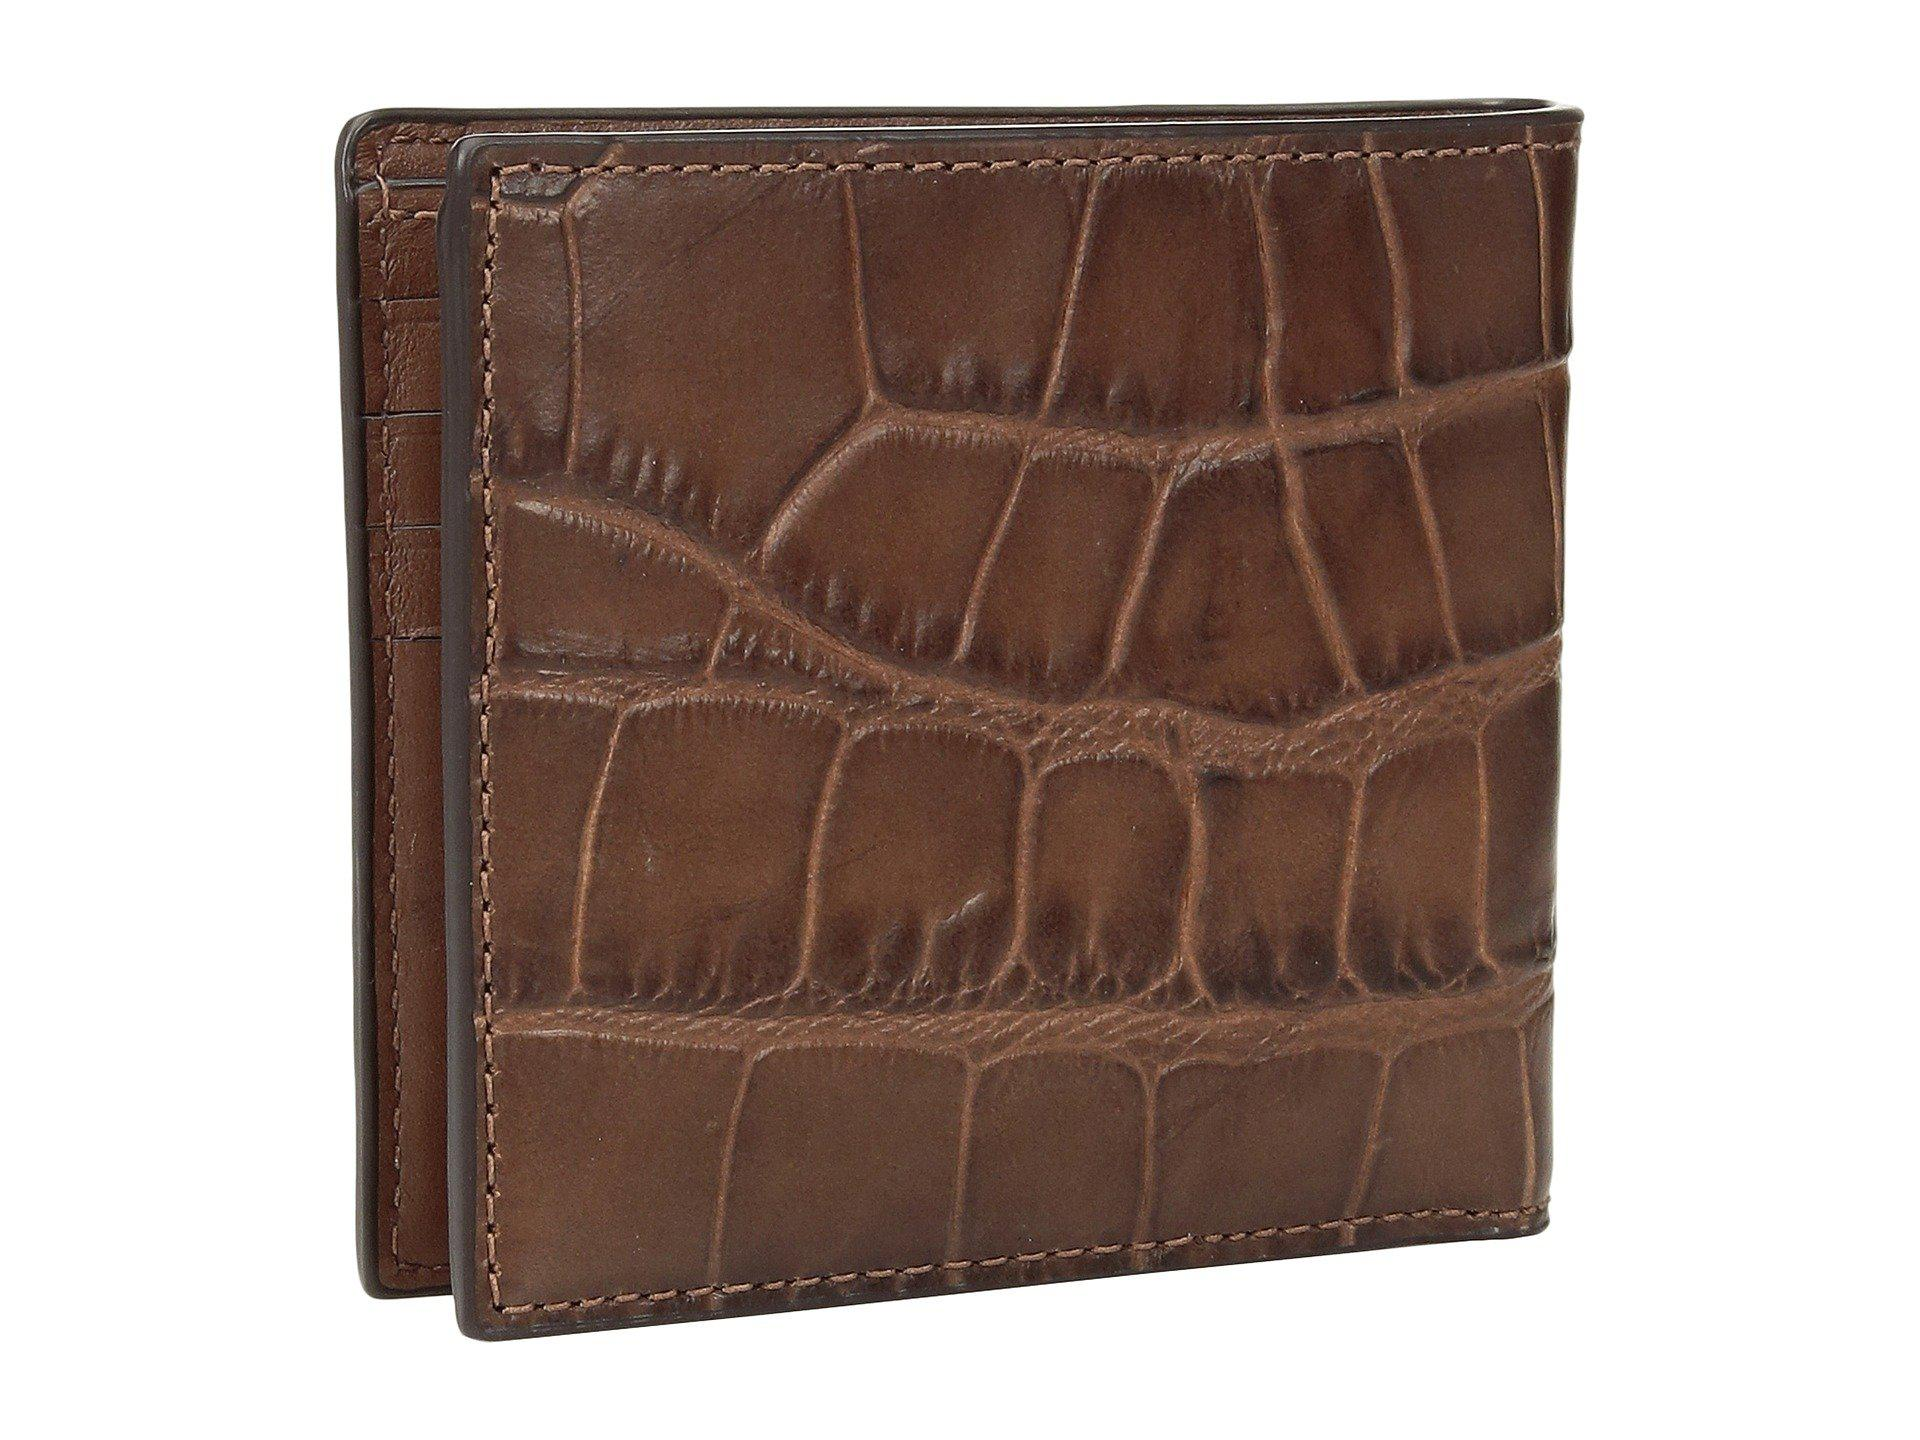 27775d89f649 COACH - Brown Double Billfold Wallet (saddle) Bags for Men - Lyst. View  fullscreen